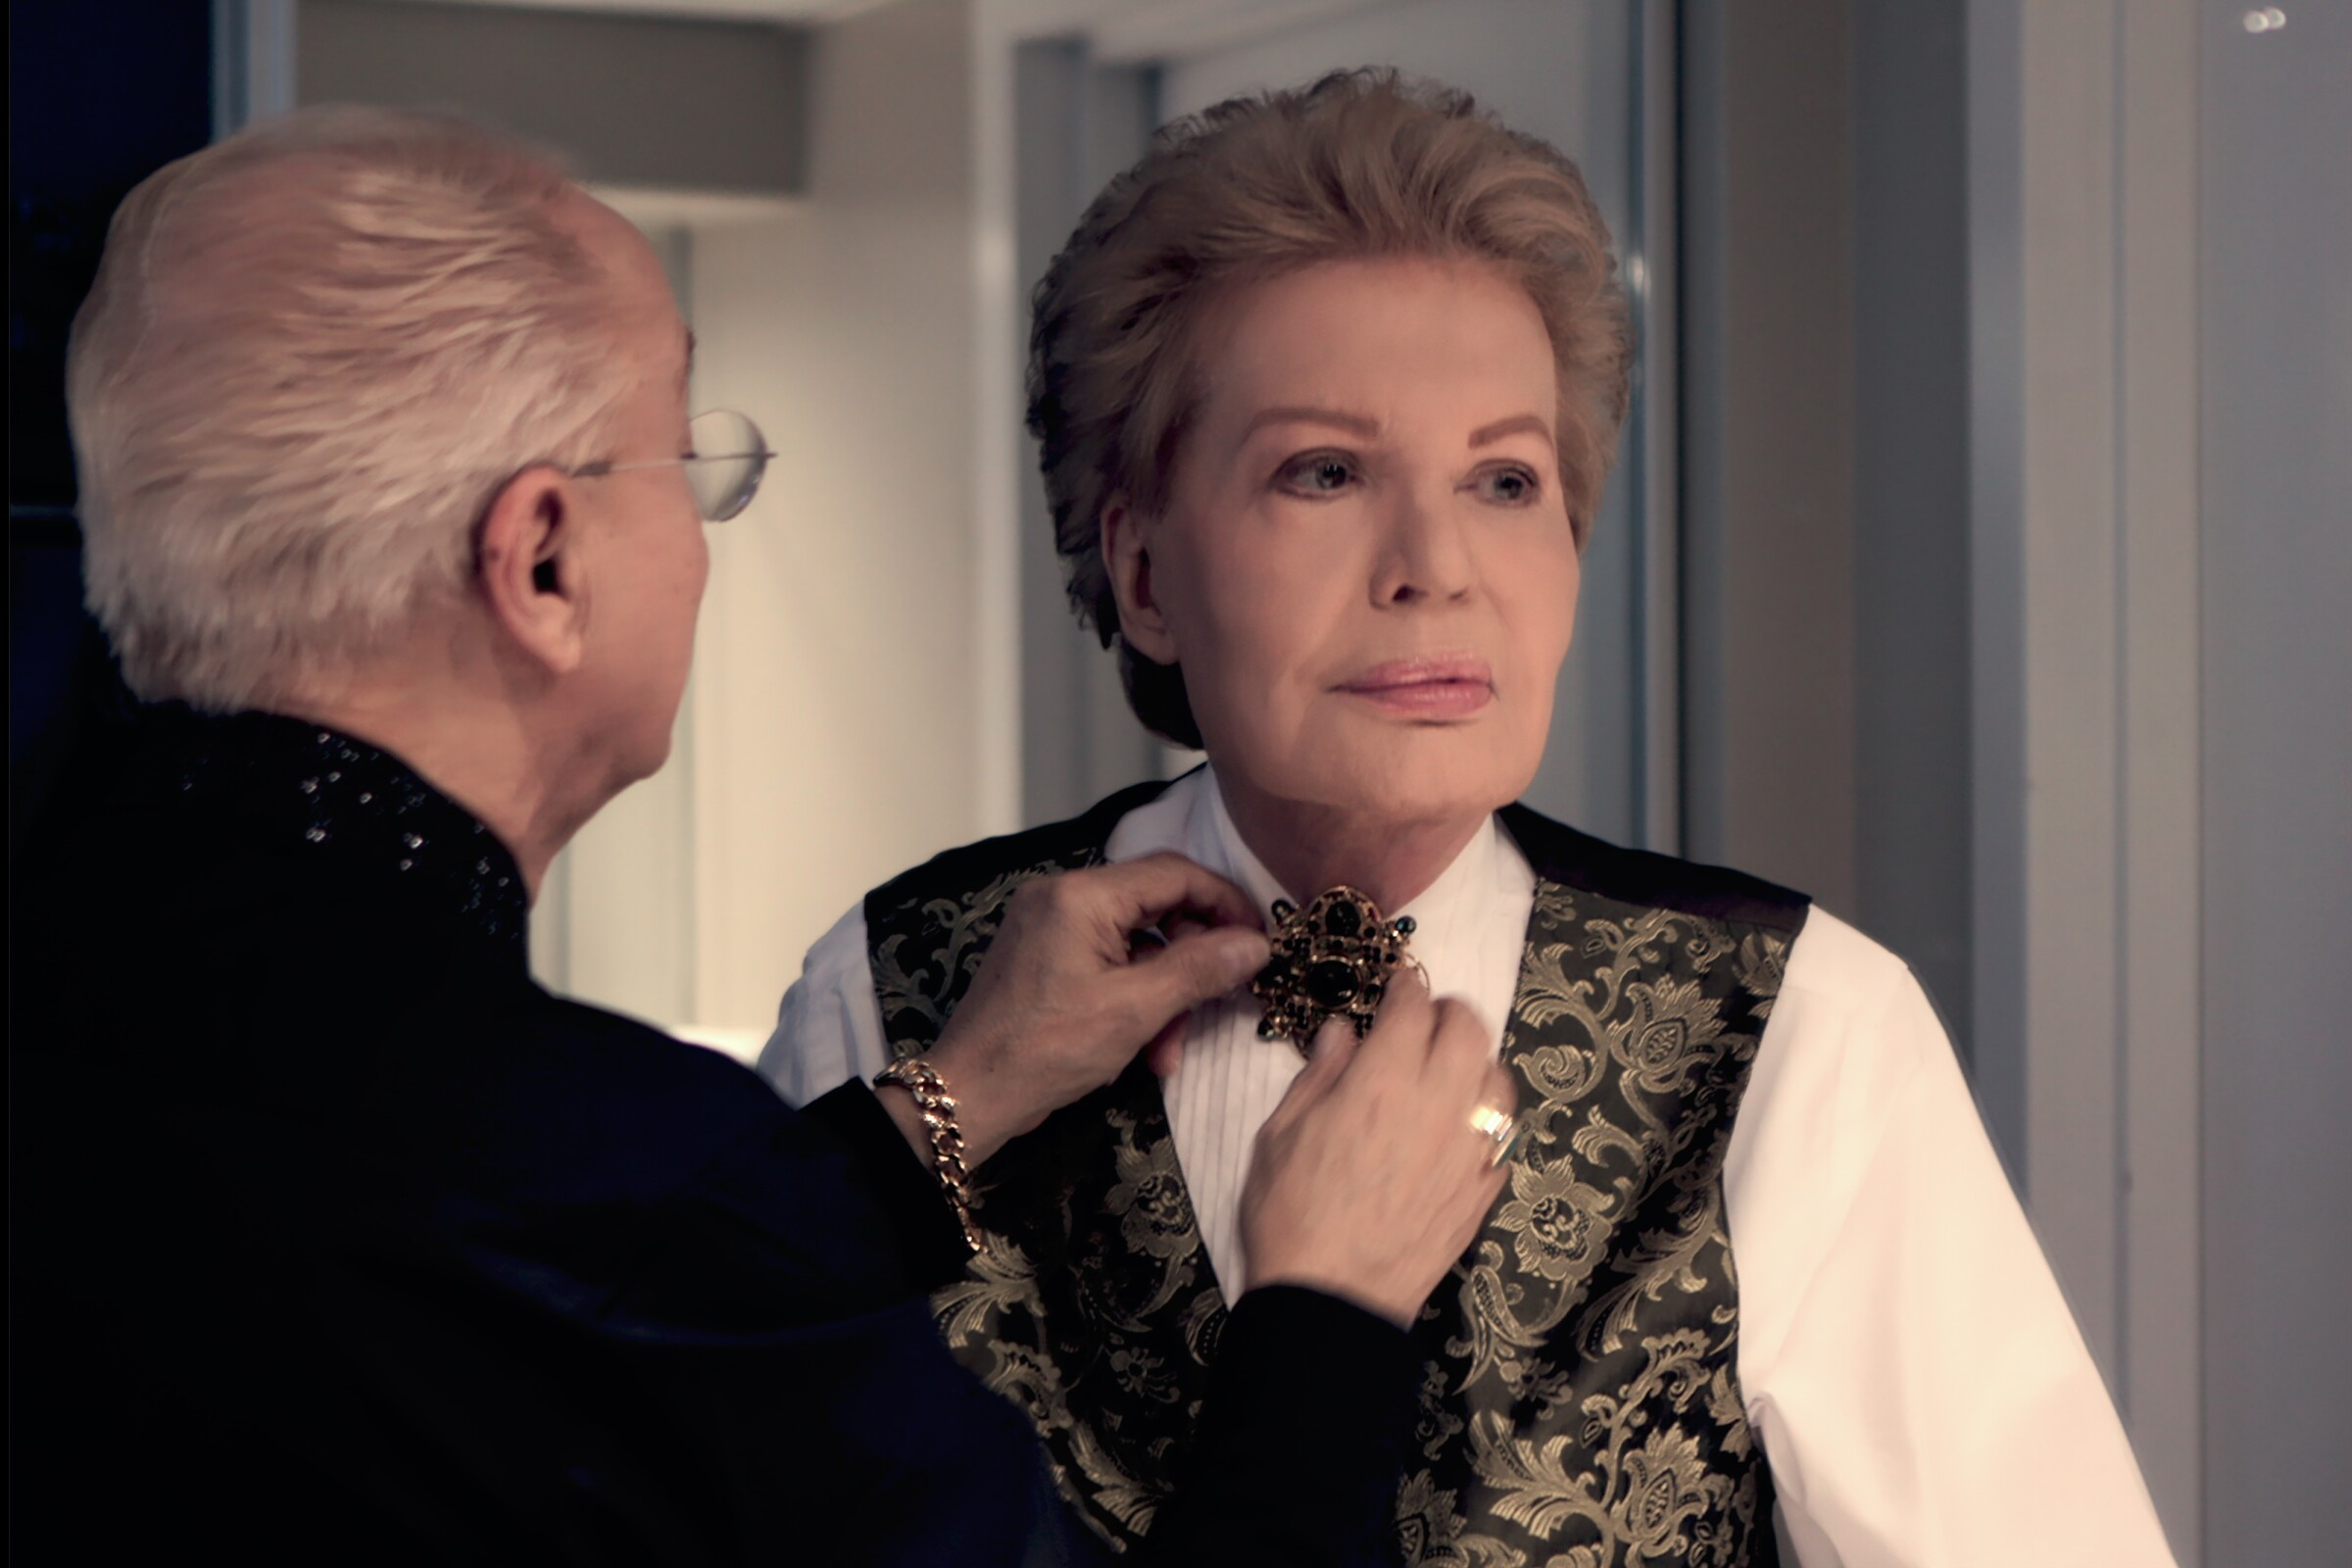 Willie Acosta, left, helps astrologer Walter Mercado get dressed for an event in Miami.